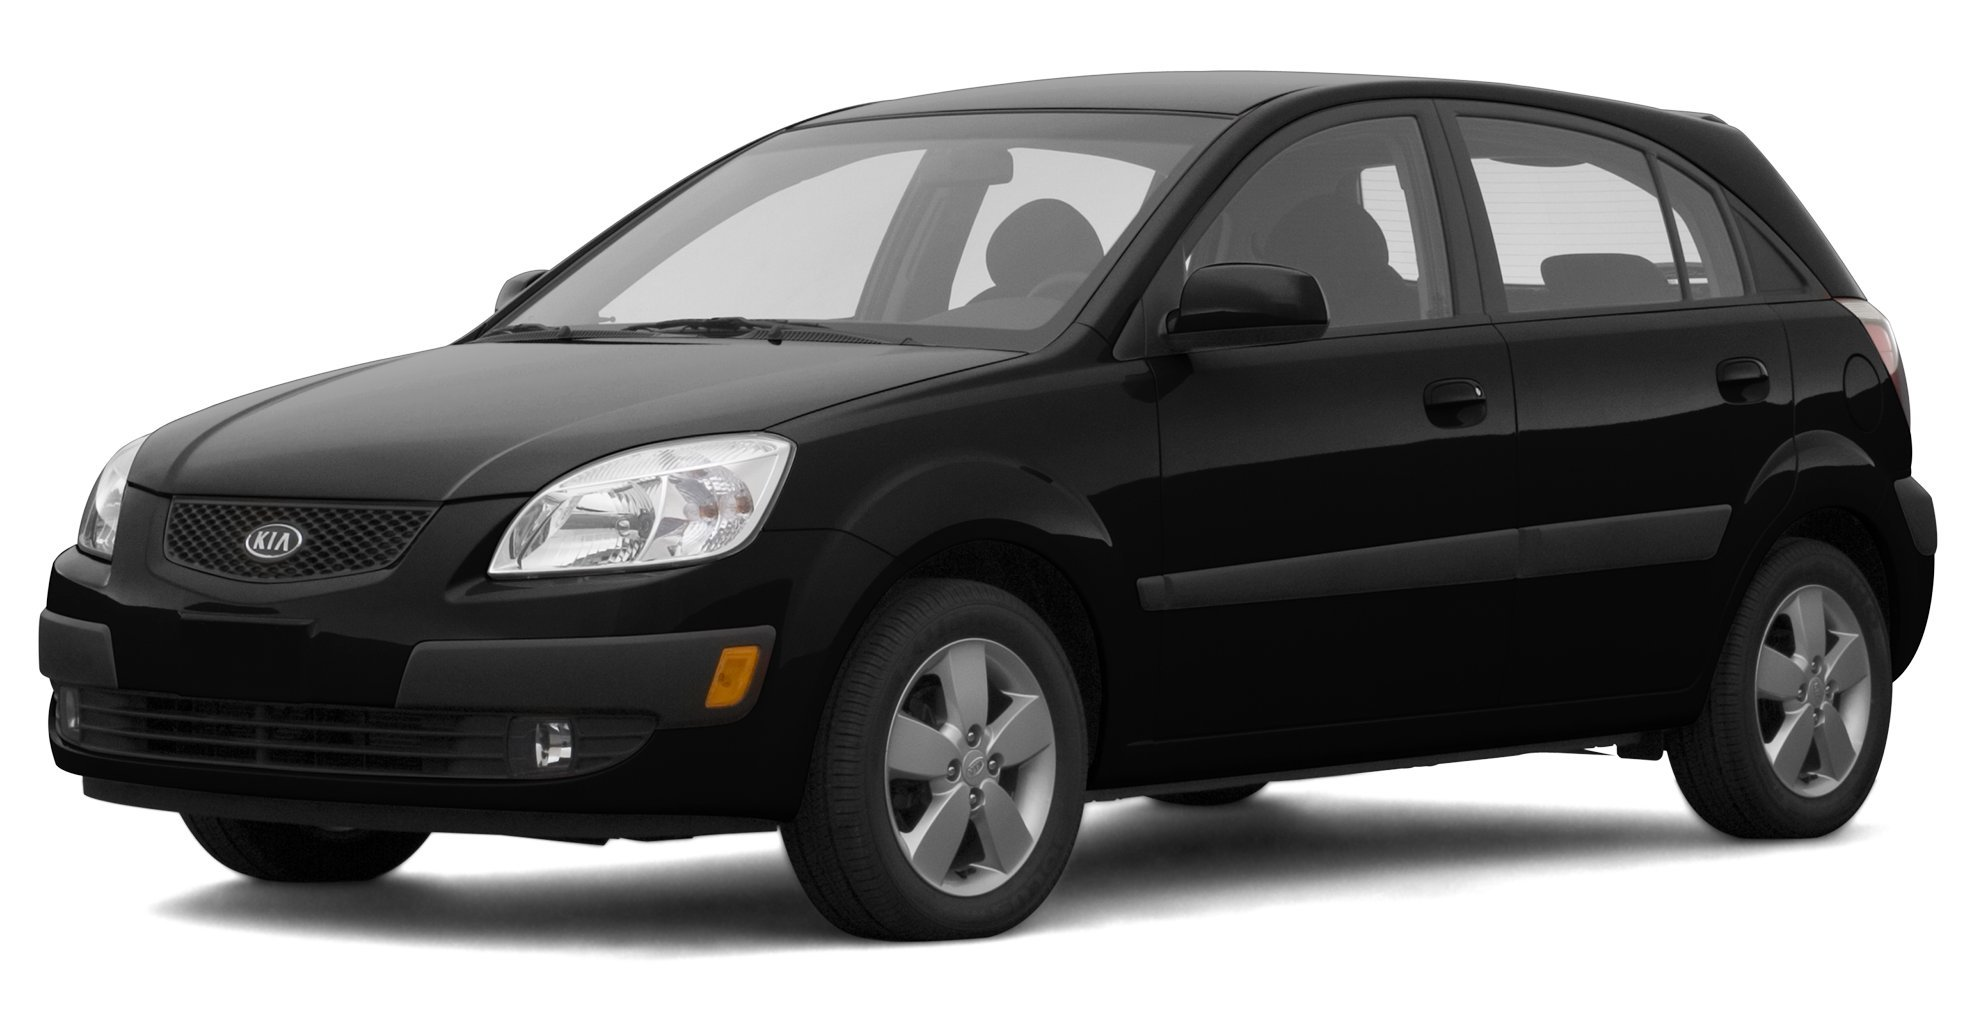 2007 Dodge Caliber, 4-Door Hatchback Front Wheel Drive, 2007 Kia Rio SX,  5-Door Hatchback Manual Transmission Rio5 ...